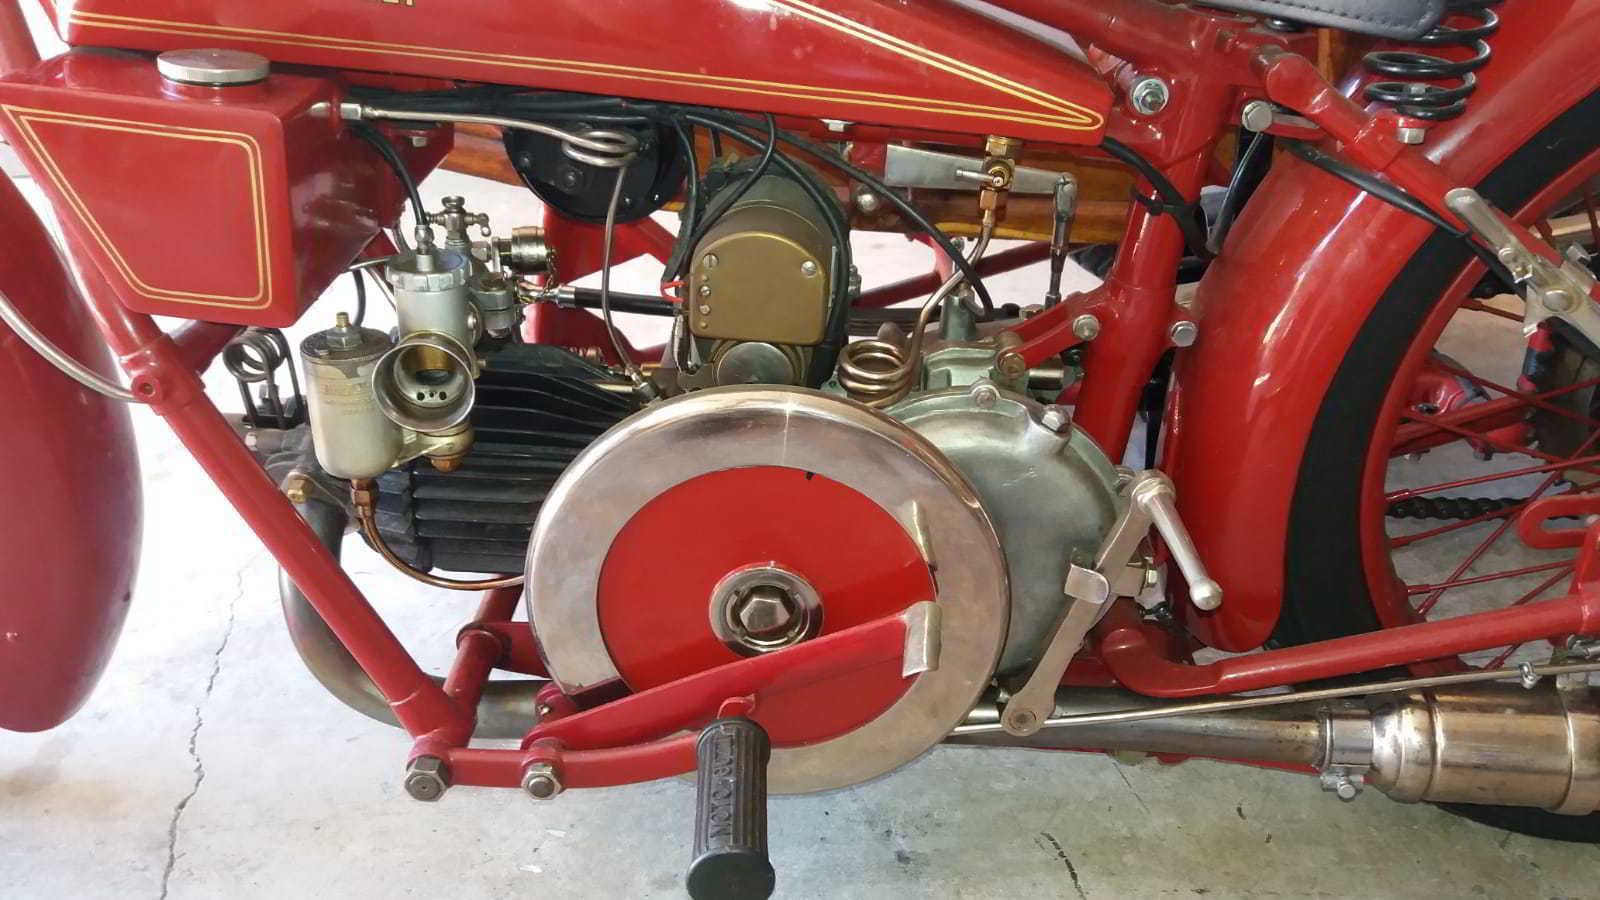 moto guzzi sport 14 sidecar 1929 For Sale (picture 3 of 4)